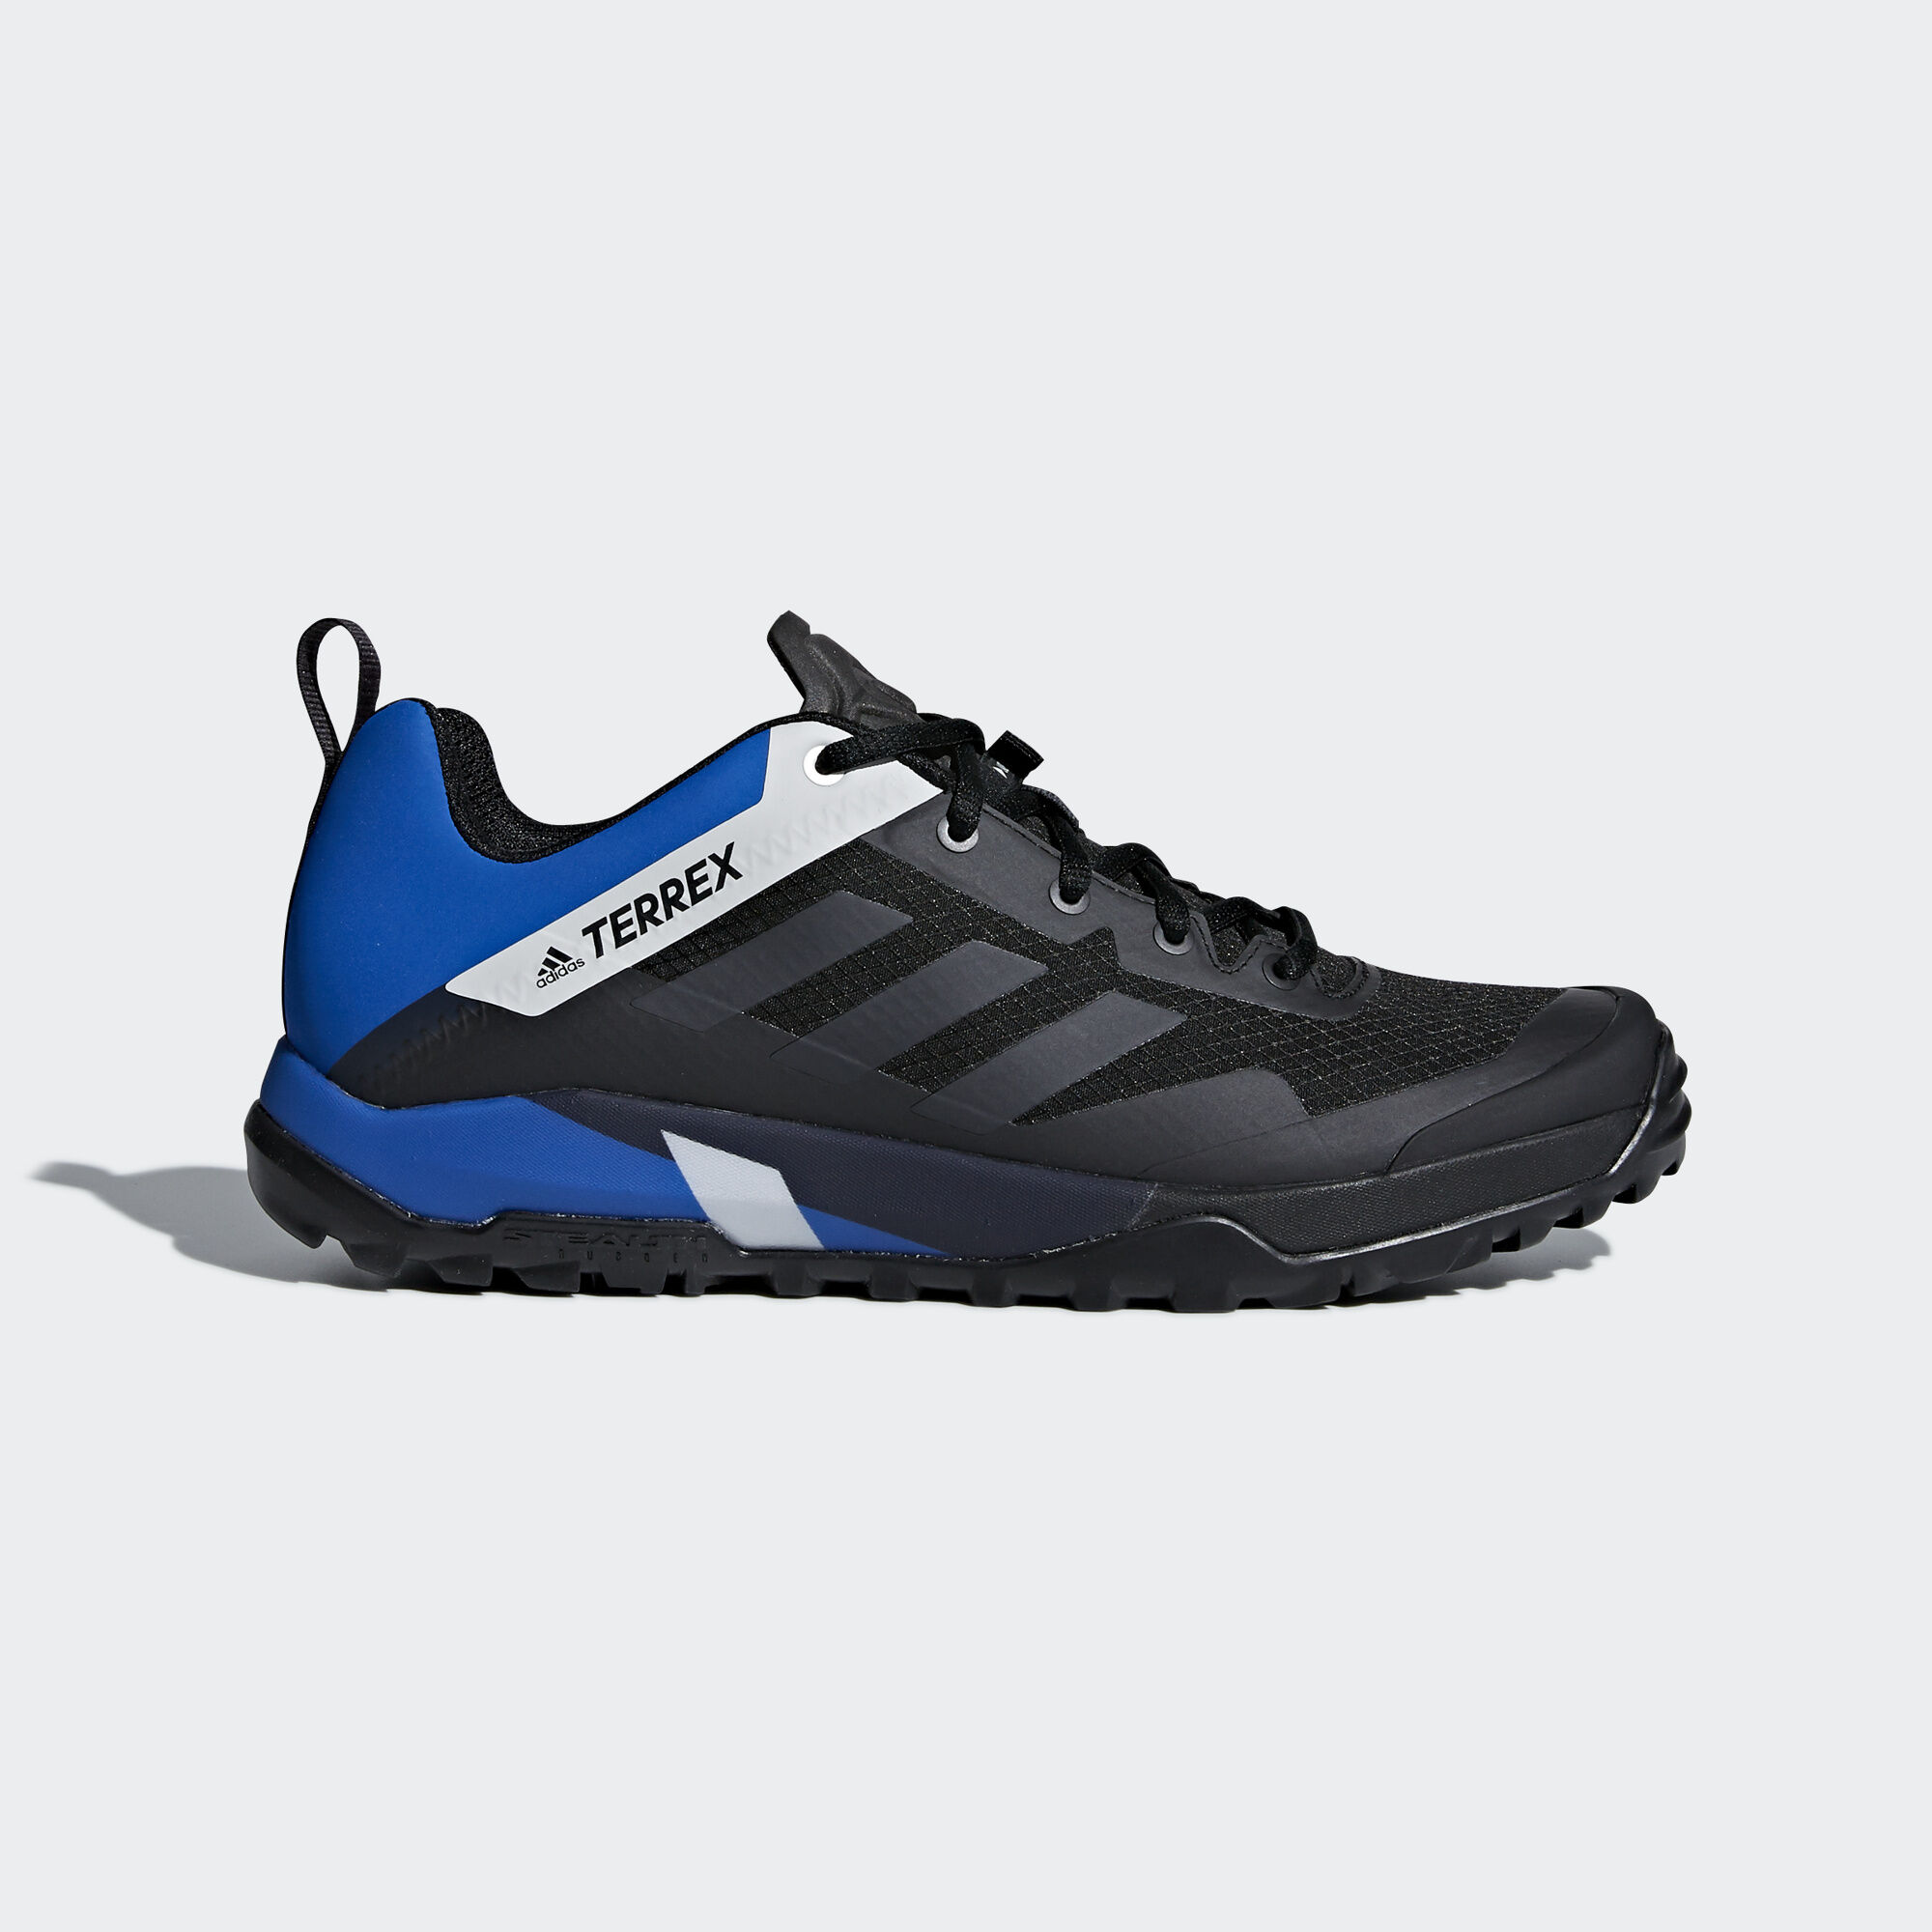 Adidas Cross Trail Shoes